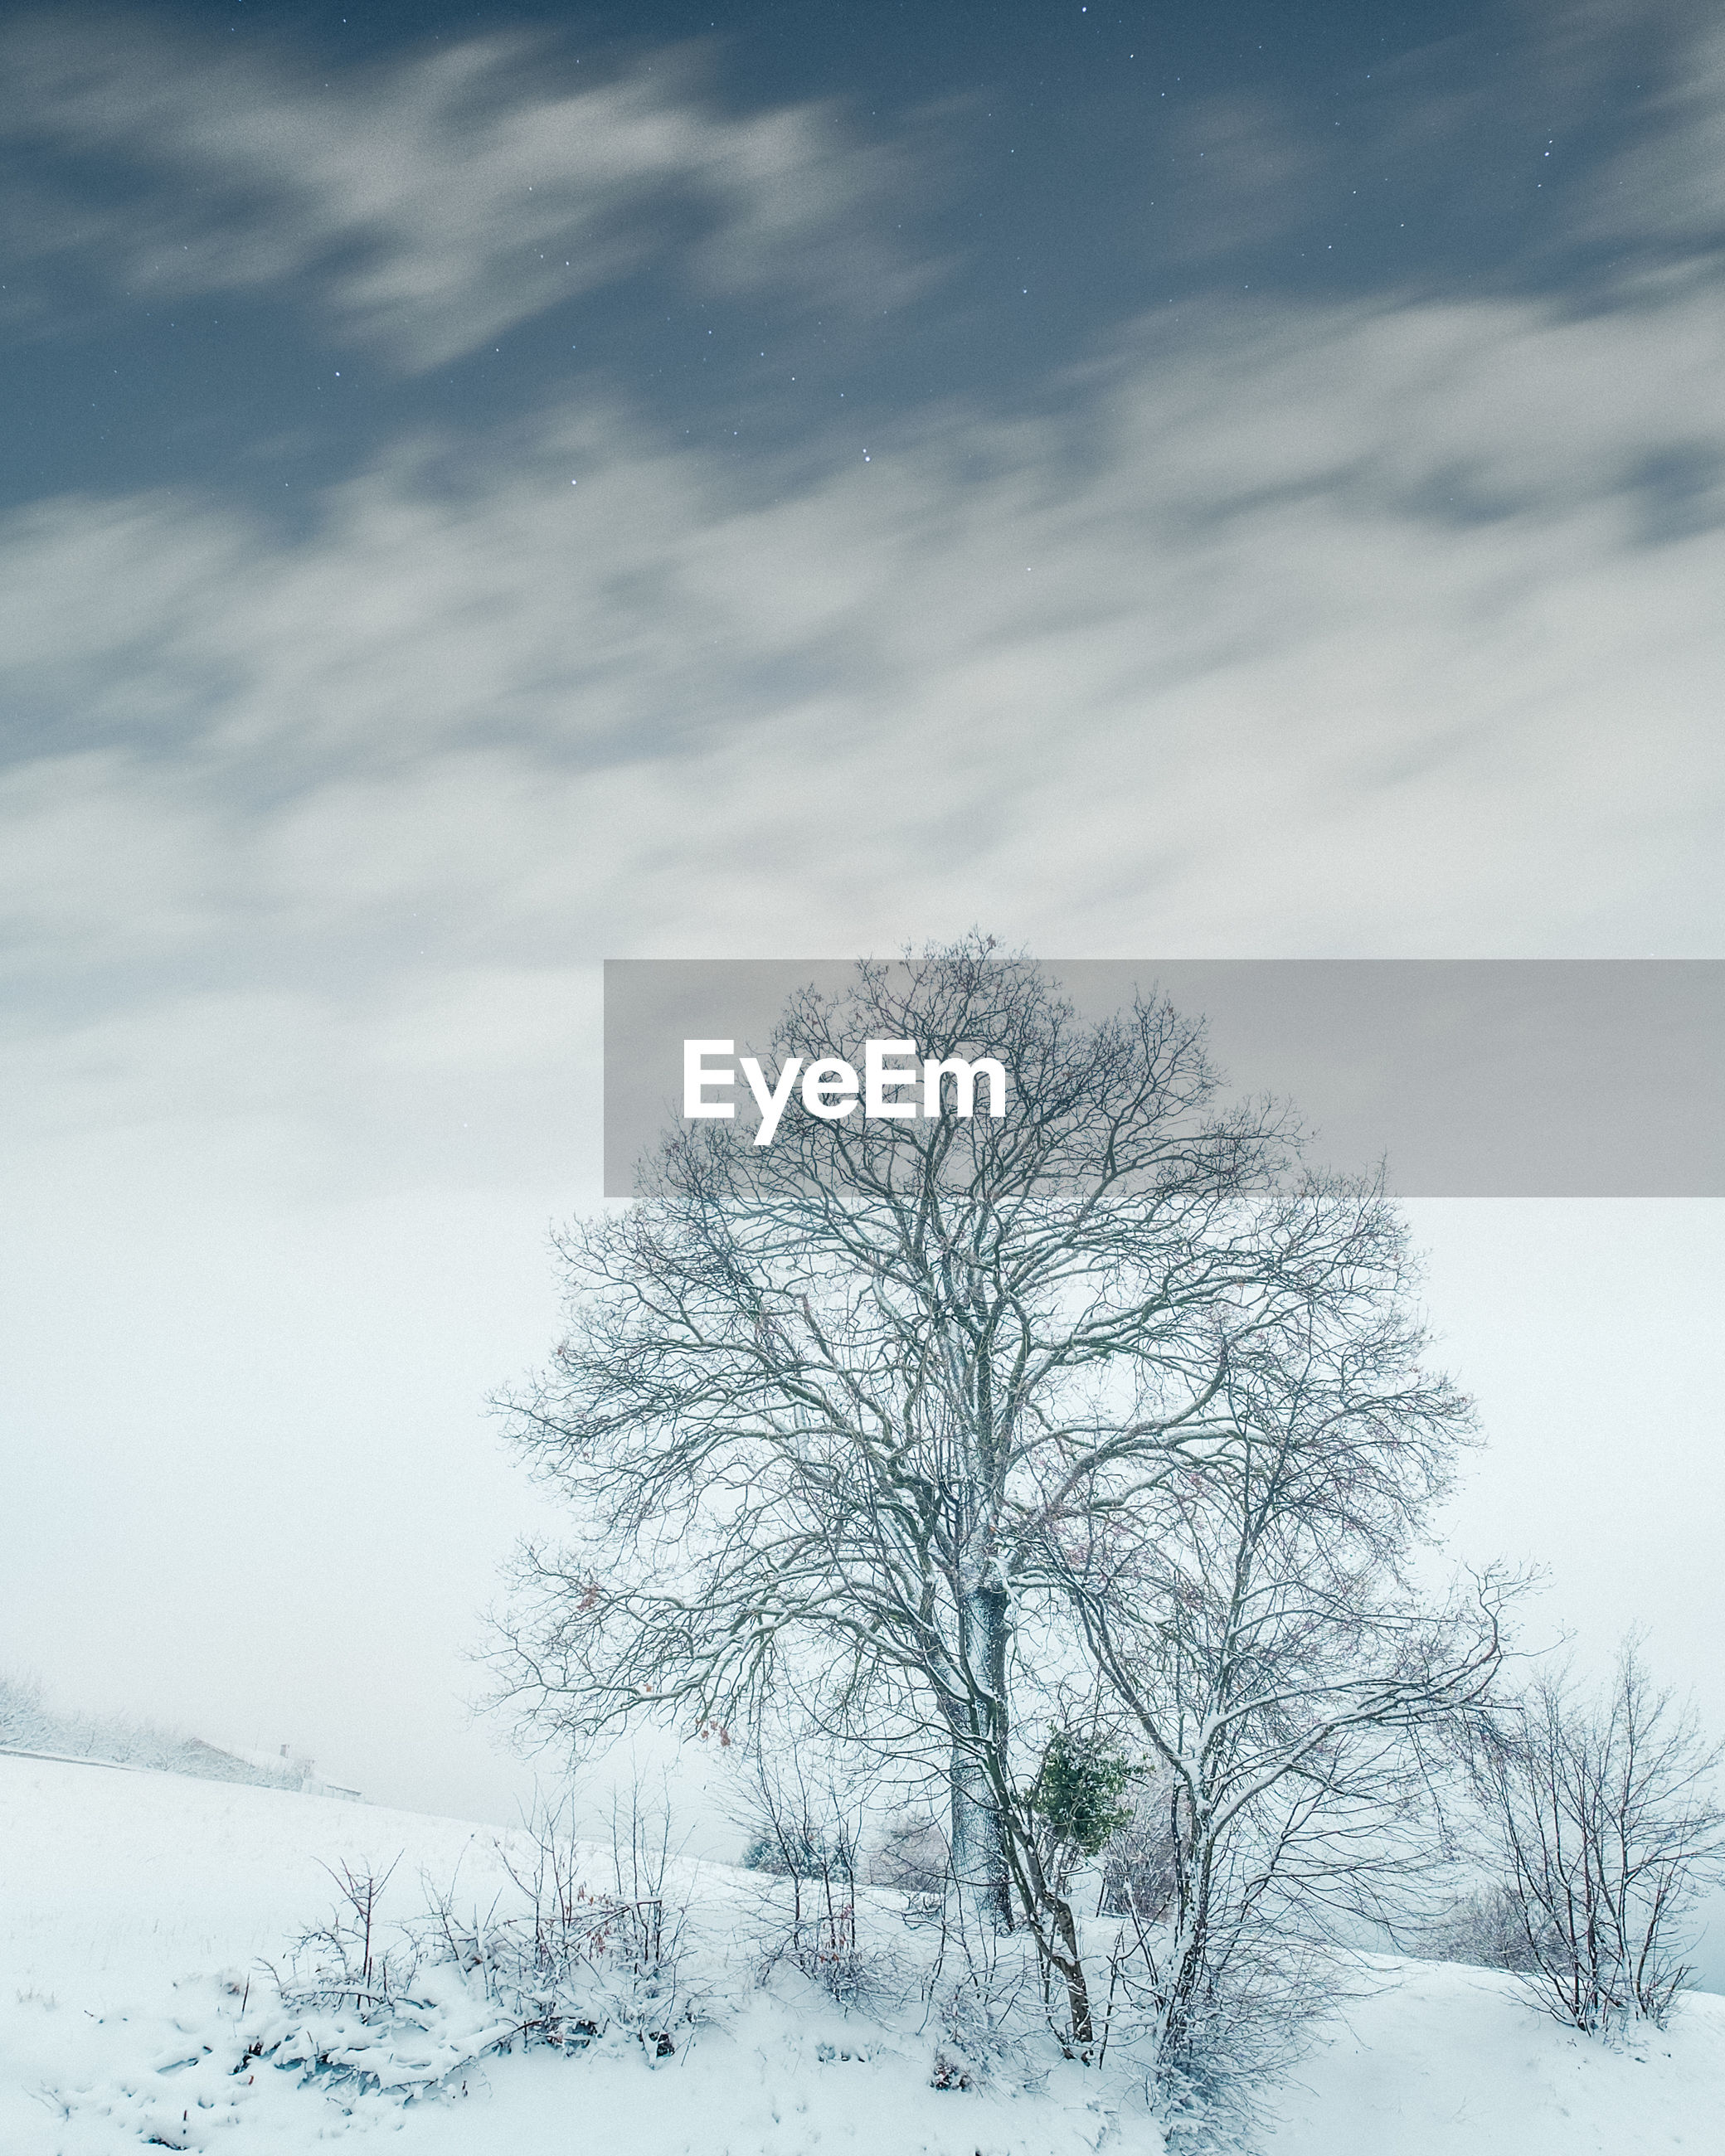 BARE TREE IN SNOW COVERED LANDSCAPE